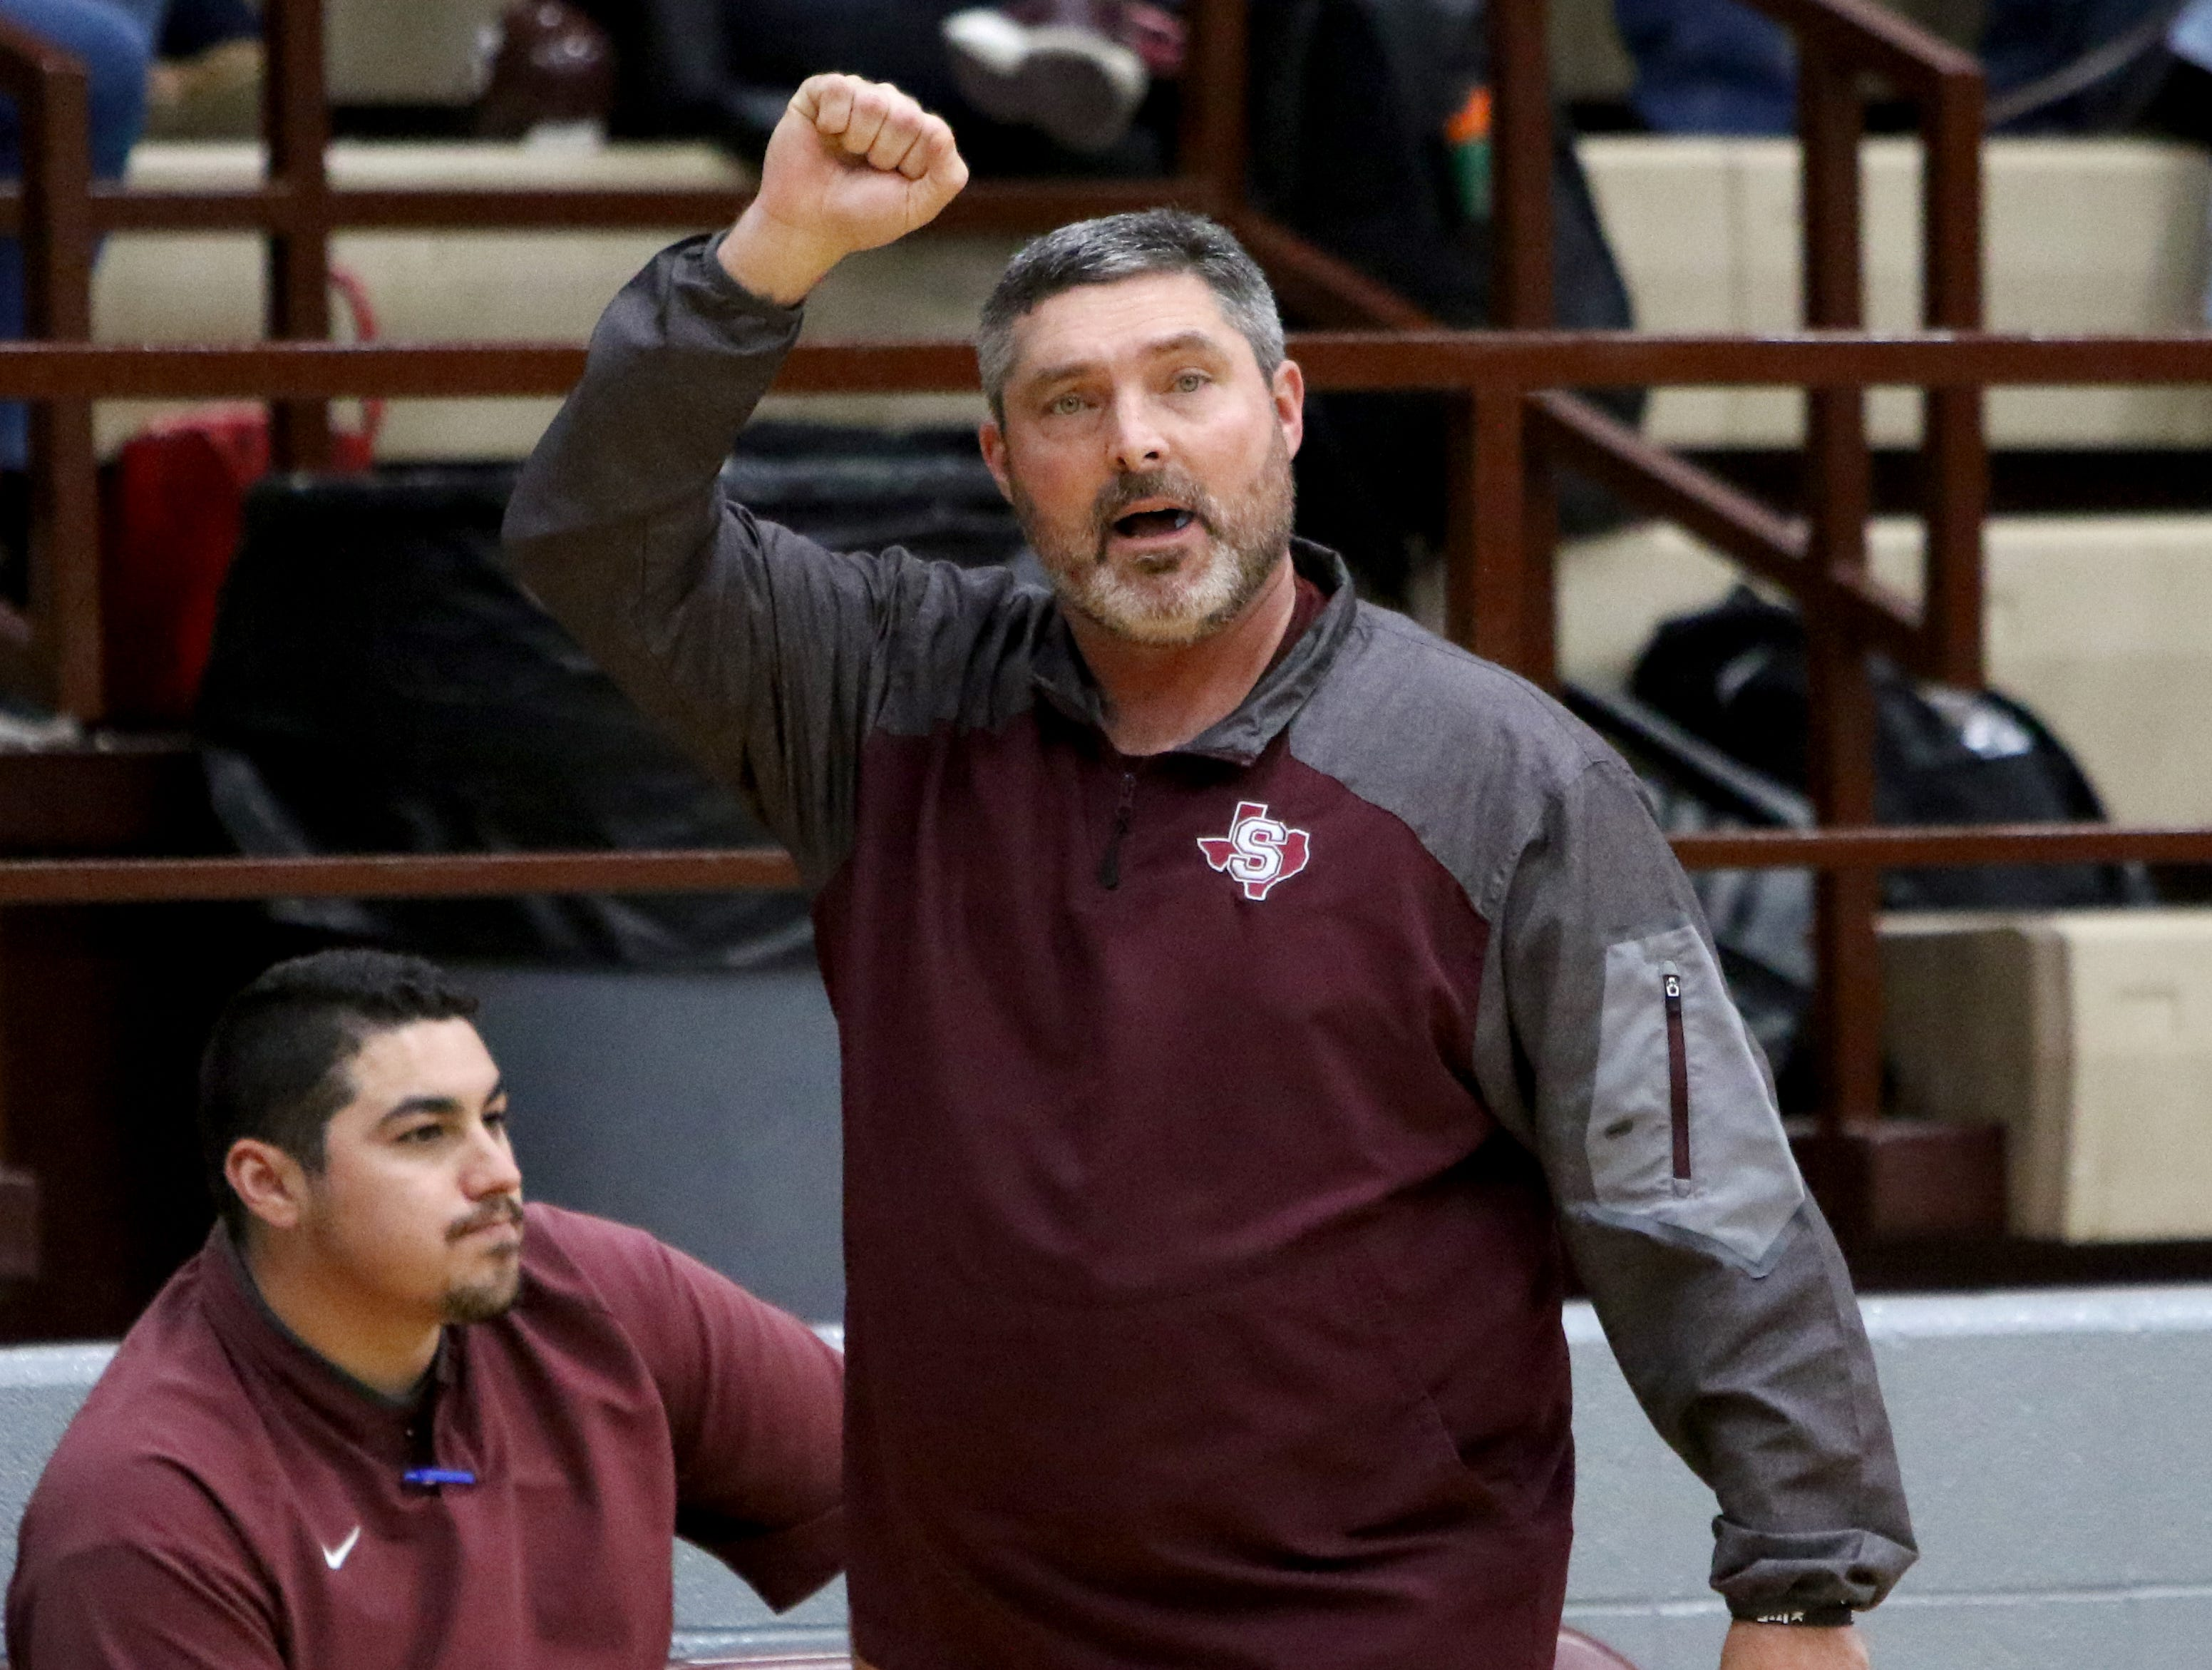 Seymour head basketball coach Rusty Gilbreath signals to his players in the game against Windthorst Tuesday, Jan. 8, 2019, in Seymour.